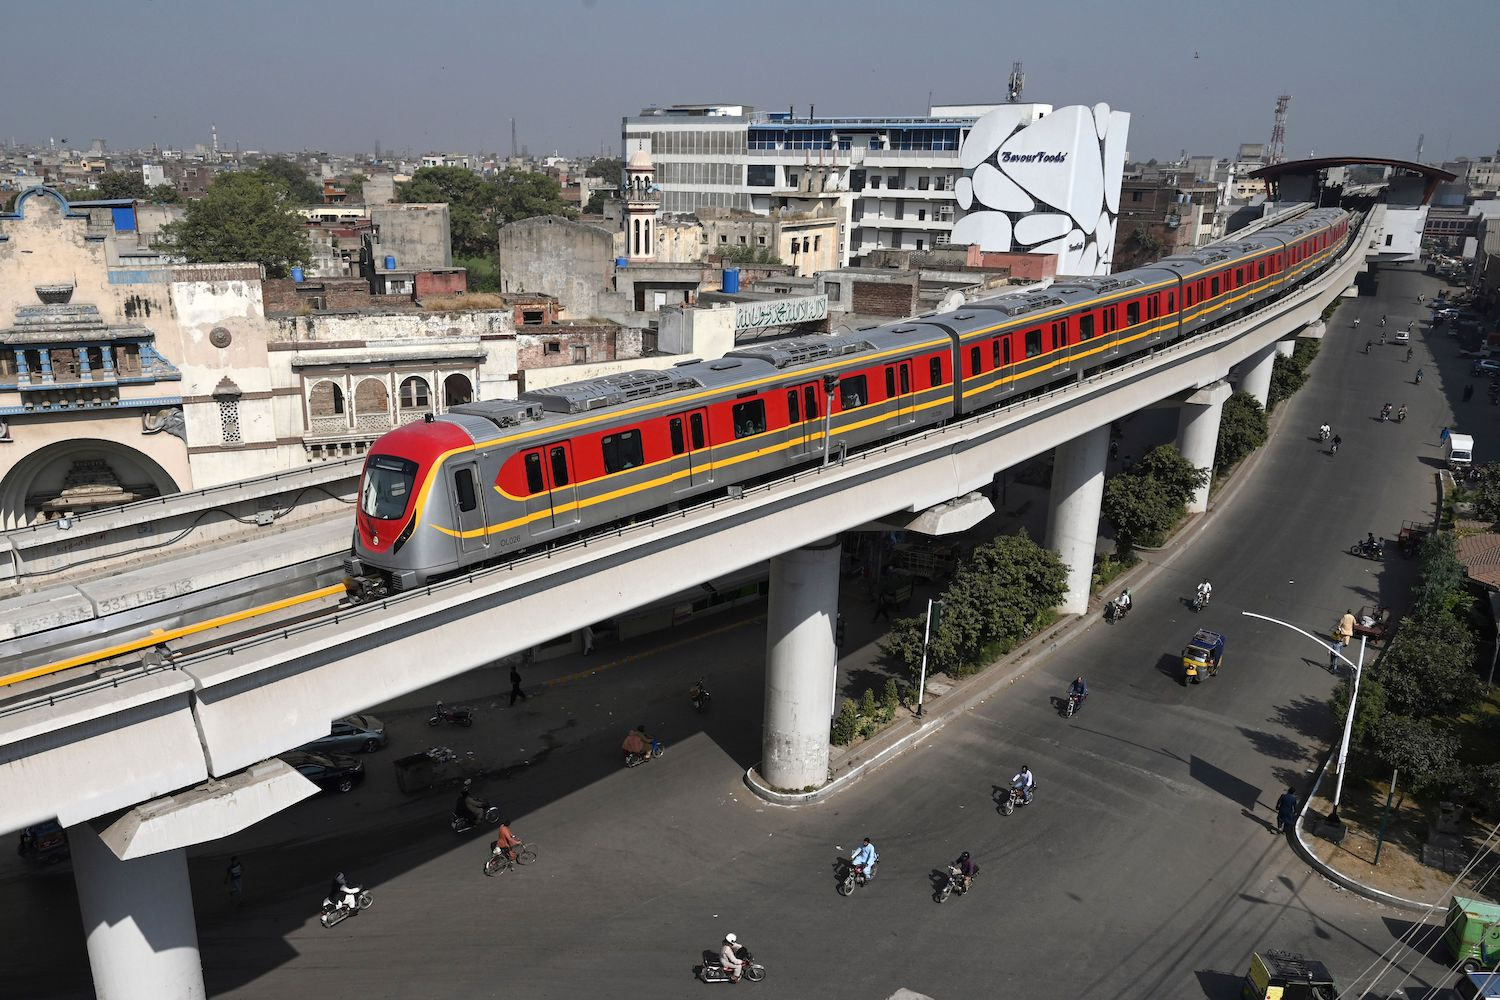 A newly built metro train, a project planned under the China-Pakistan Economic Corridor (CPEC), drives through on a track in Lahore, Pakistan, on Oct. 26, 2020.